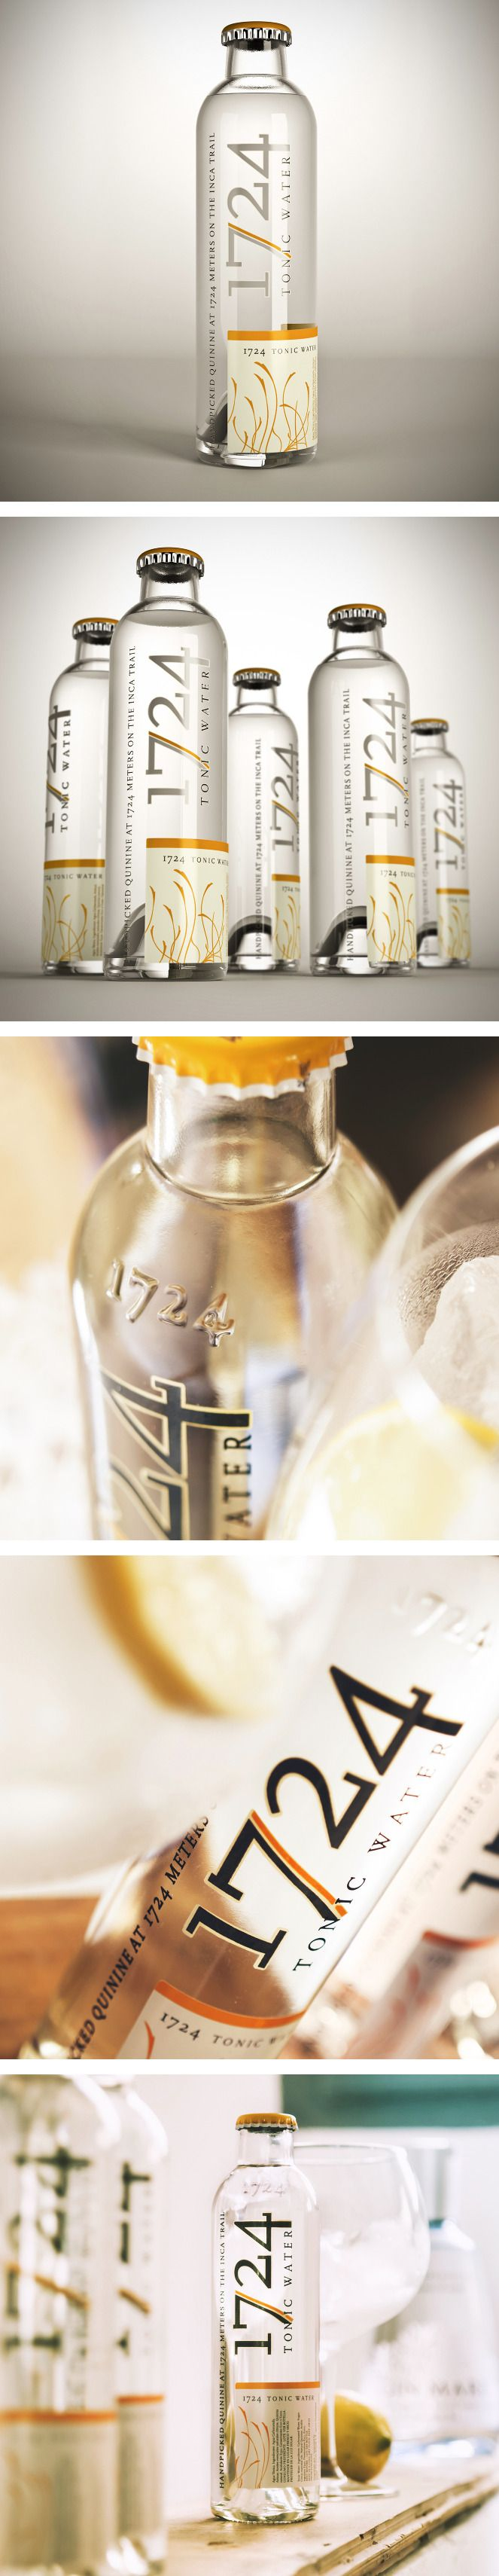 1724 Tonic Water - best tonic water EVER